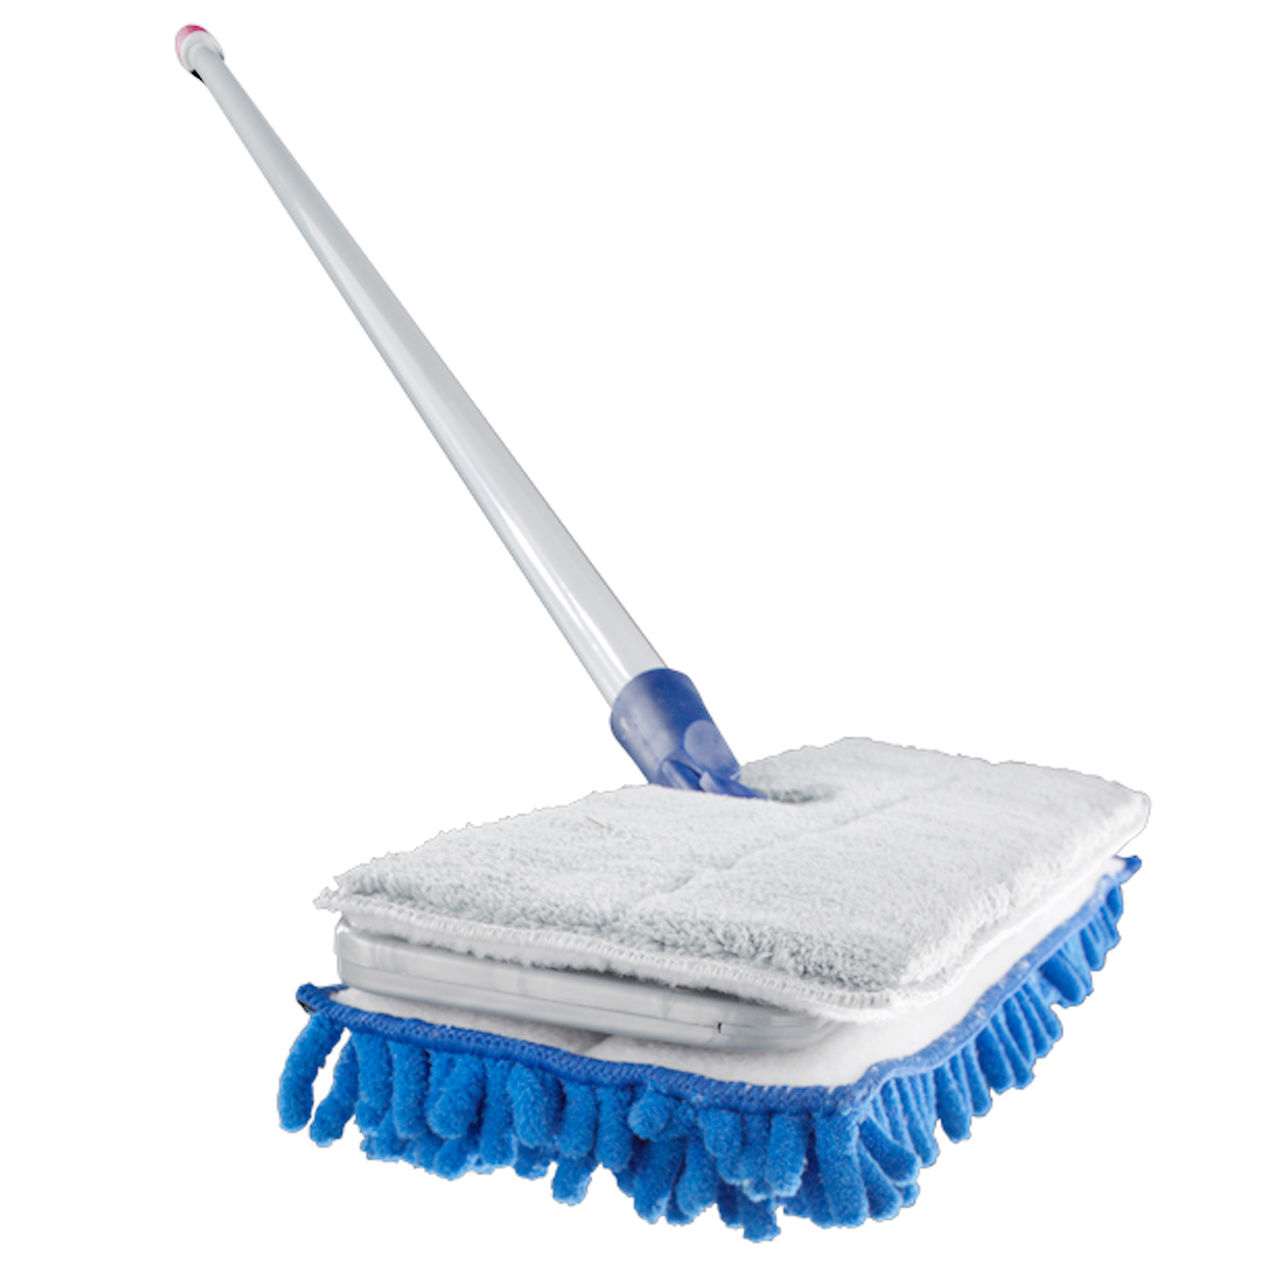 Wilmington NC life with pets organizing dust mop.jpg